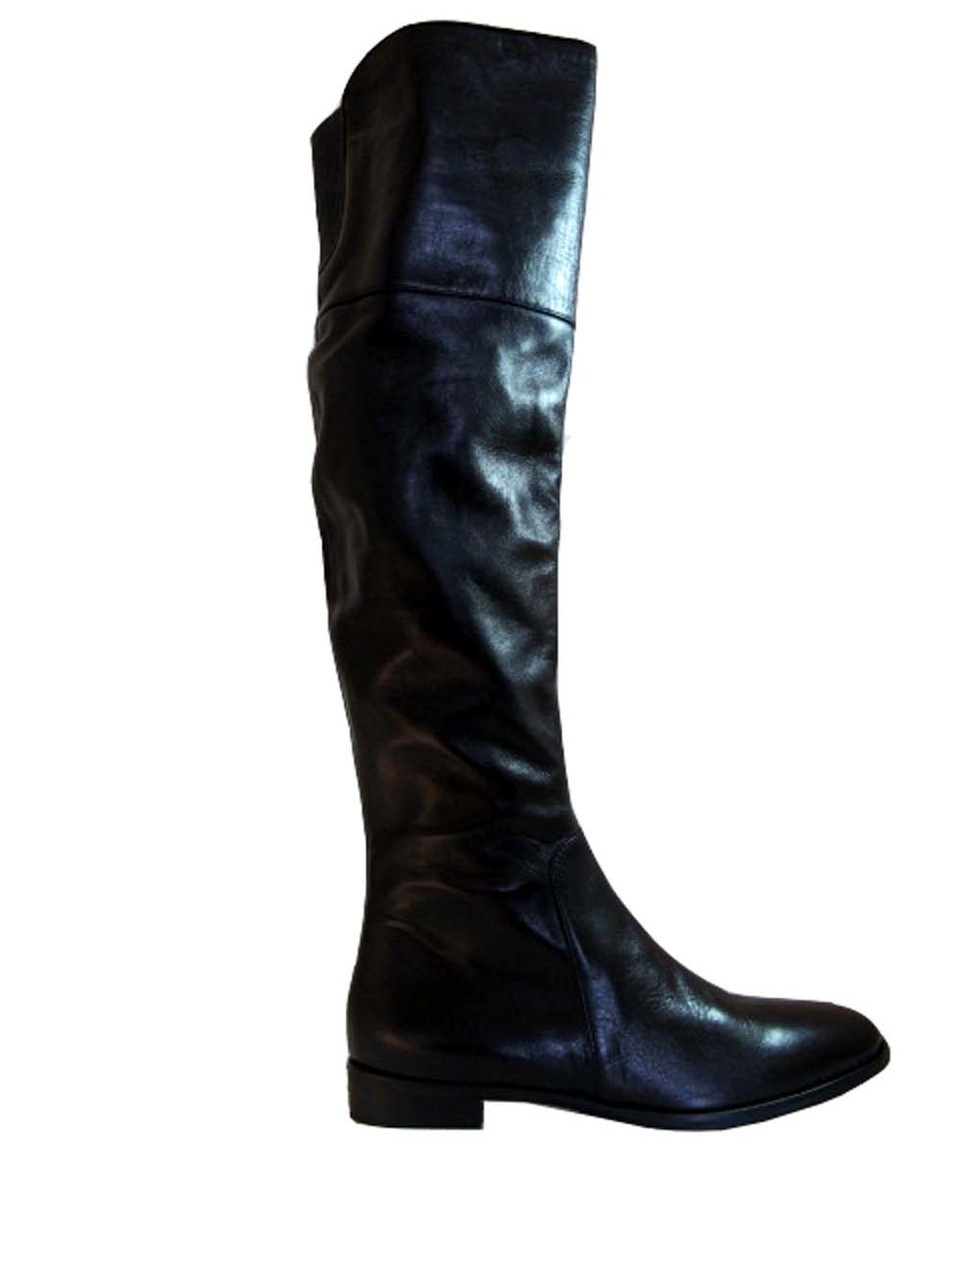 f6de375d0ad Julie Dee Women s Italian Leather 6627 Flat Knee High boots Black italian.   399.00. Julie Dee 6627 Knee High boots